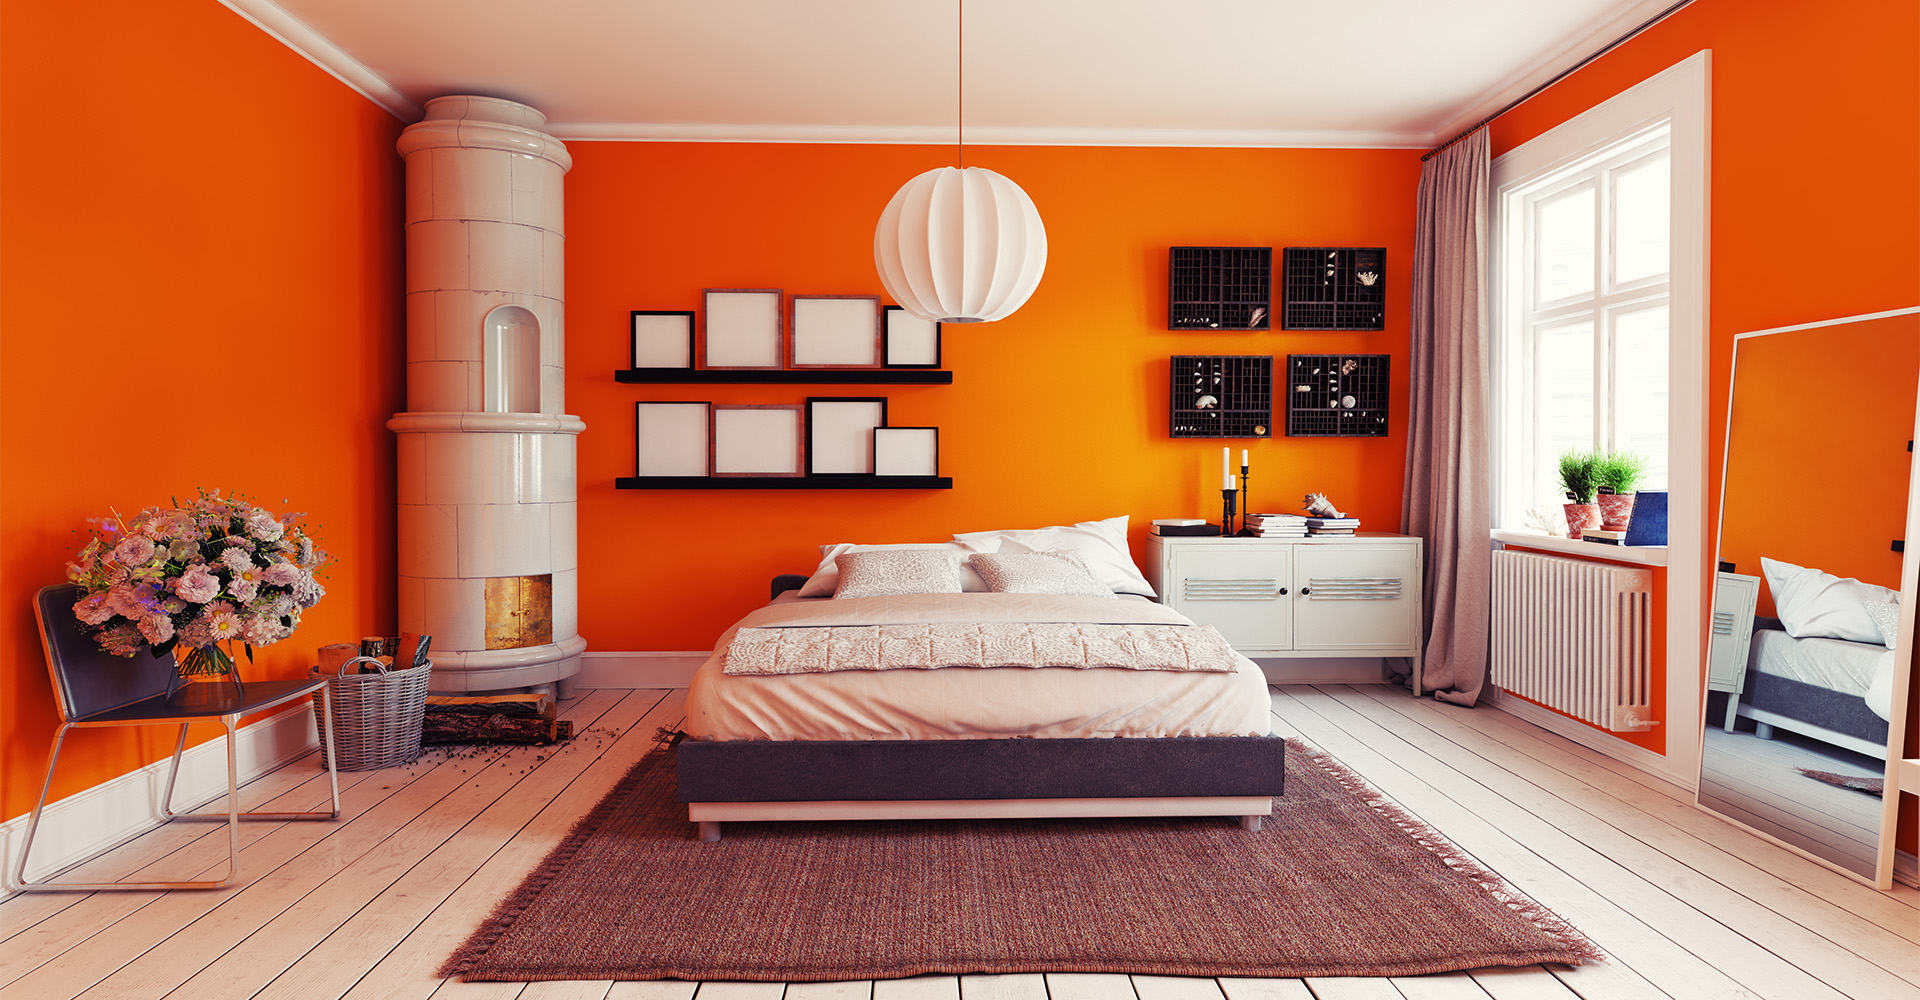 Bedroom Interior Designers in Bangalore | Bedroom Designs ...